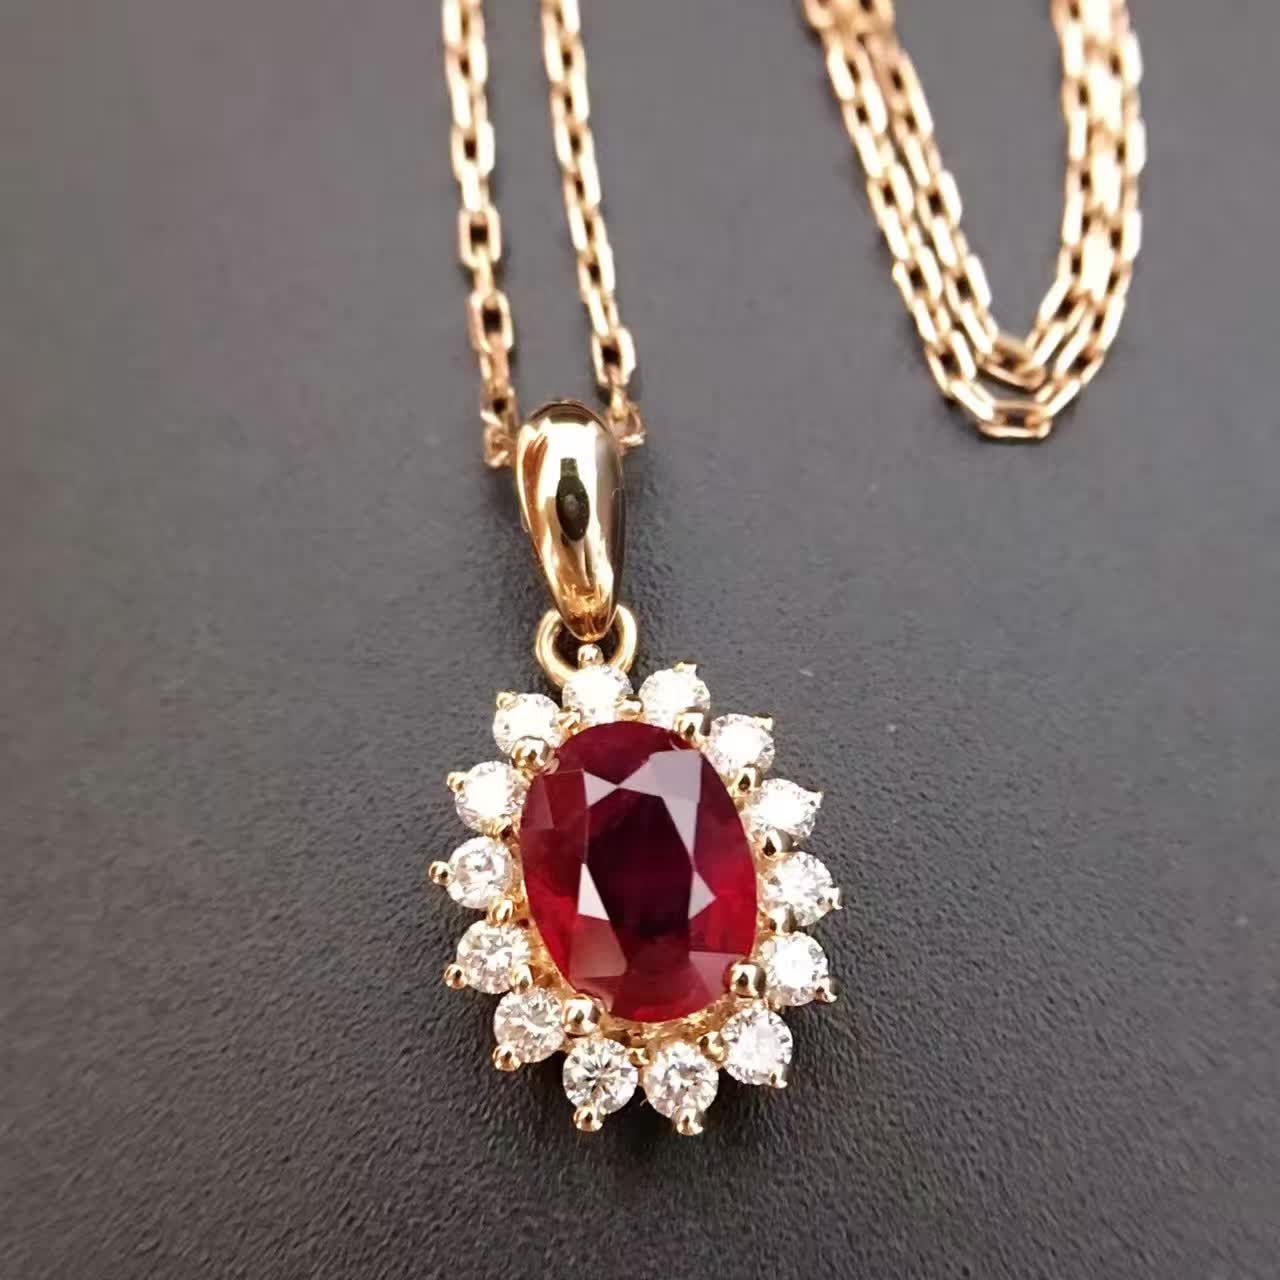 0 795ct 0 278ct 18K Gold Natural Ruby and Pendant font b Necklace b font font